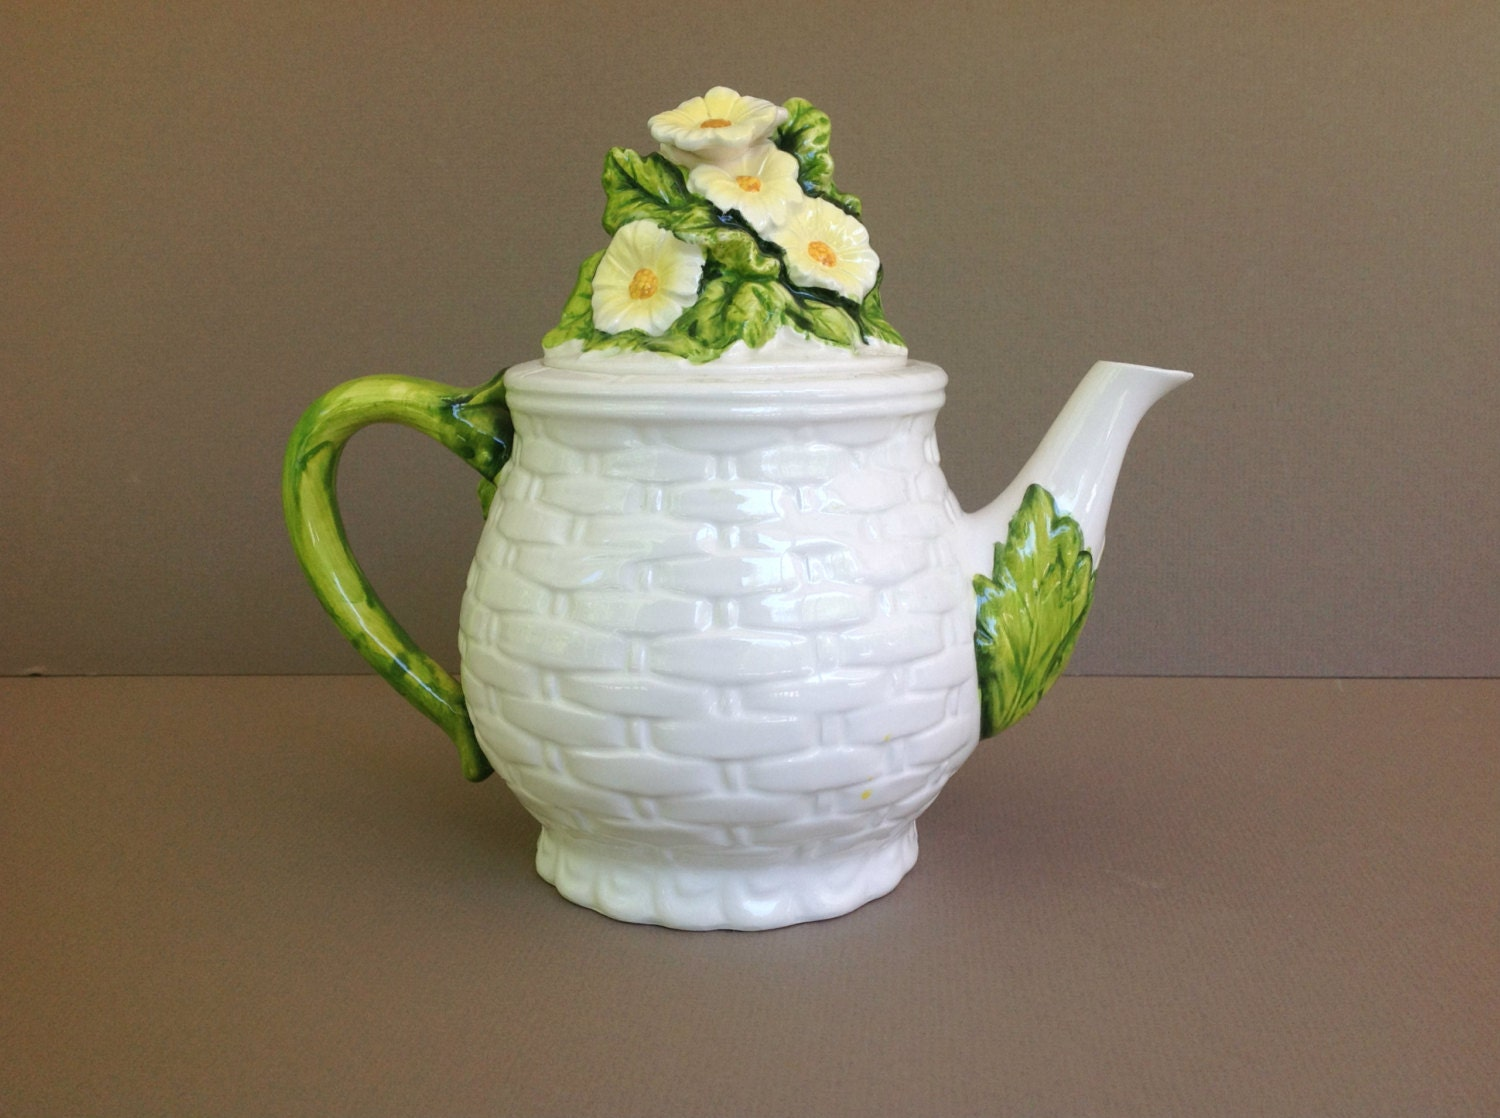 how to clean limestone teapot stains